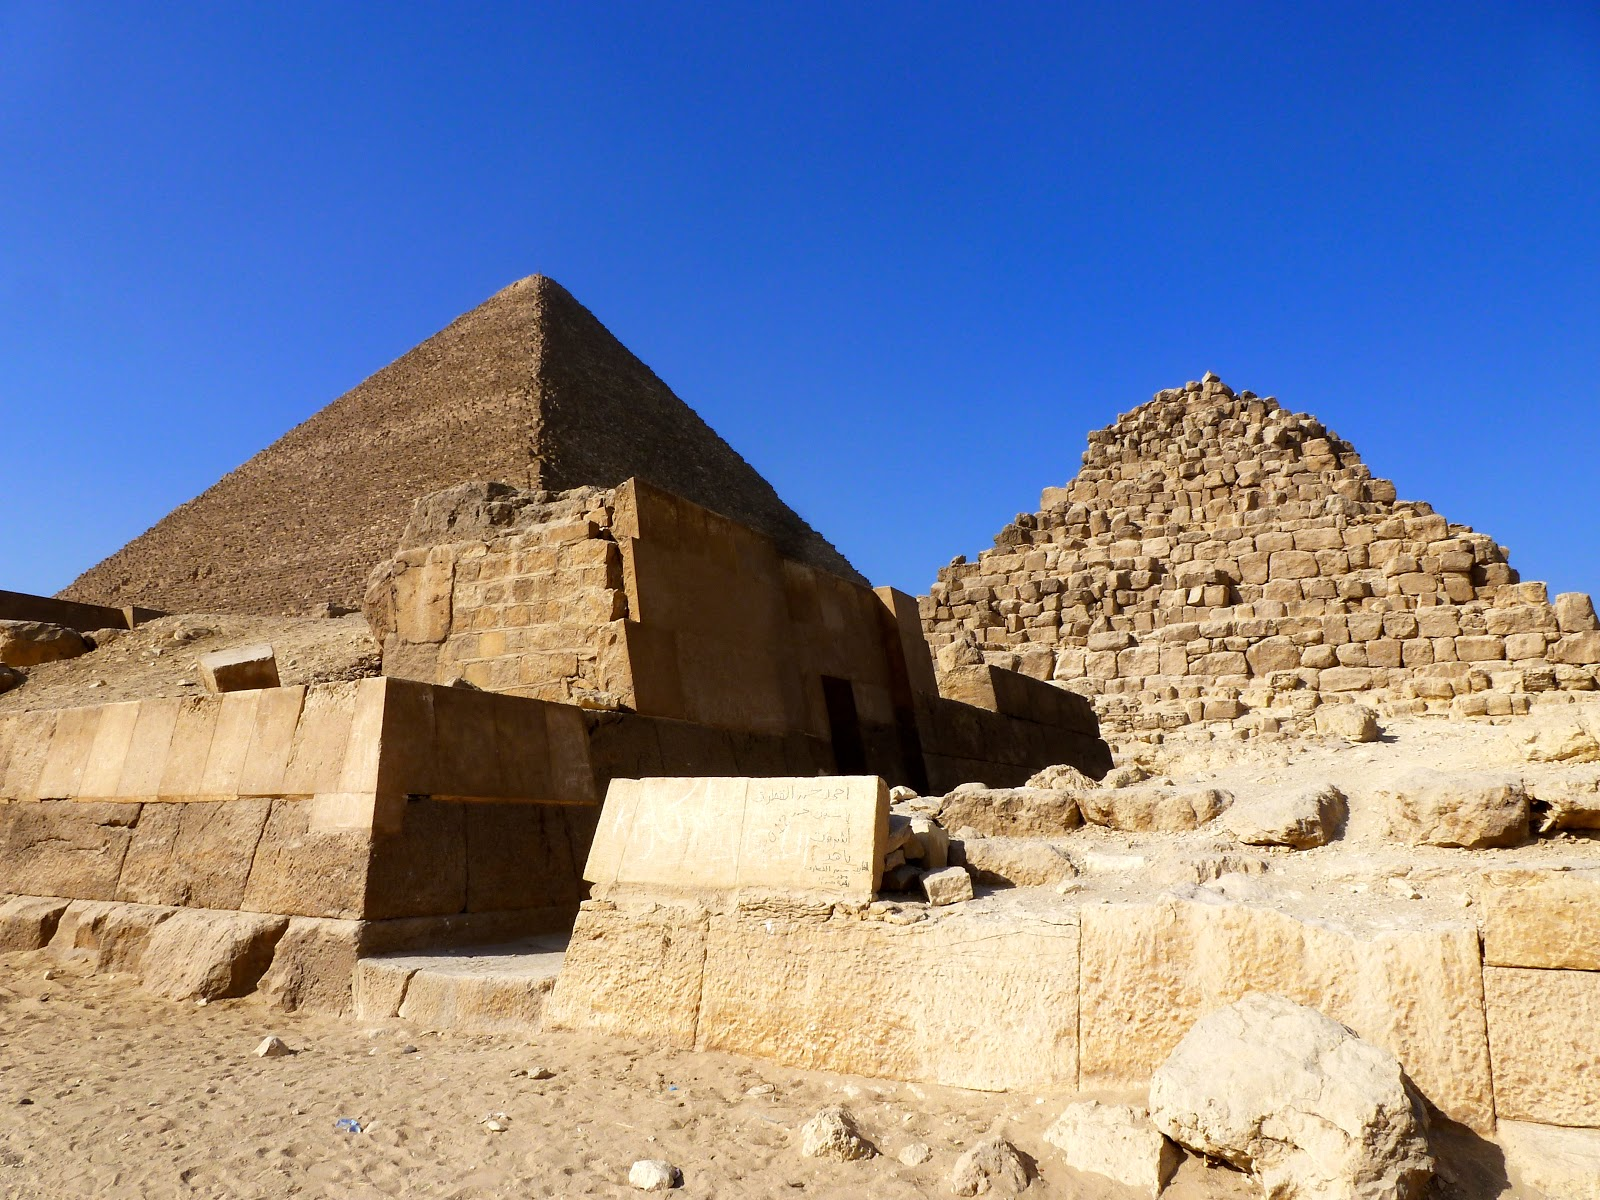 It is obligatory that Savanna go to Giza which opened the door for me to fulfill pent up curiosity. & Go to Giza: the Sphinx Pyramids and Camel Dung | 8142